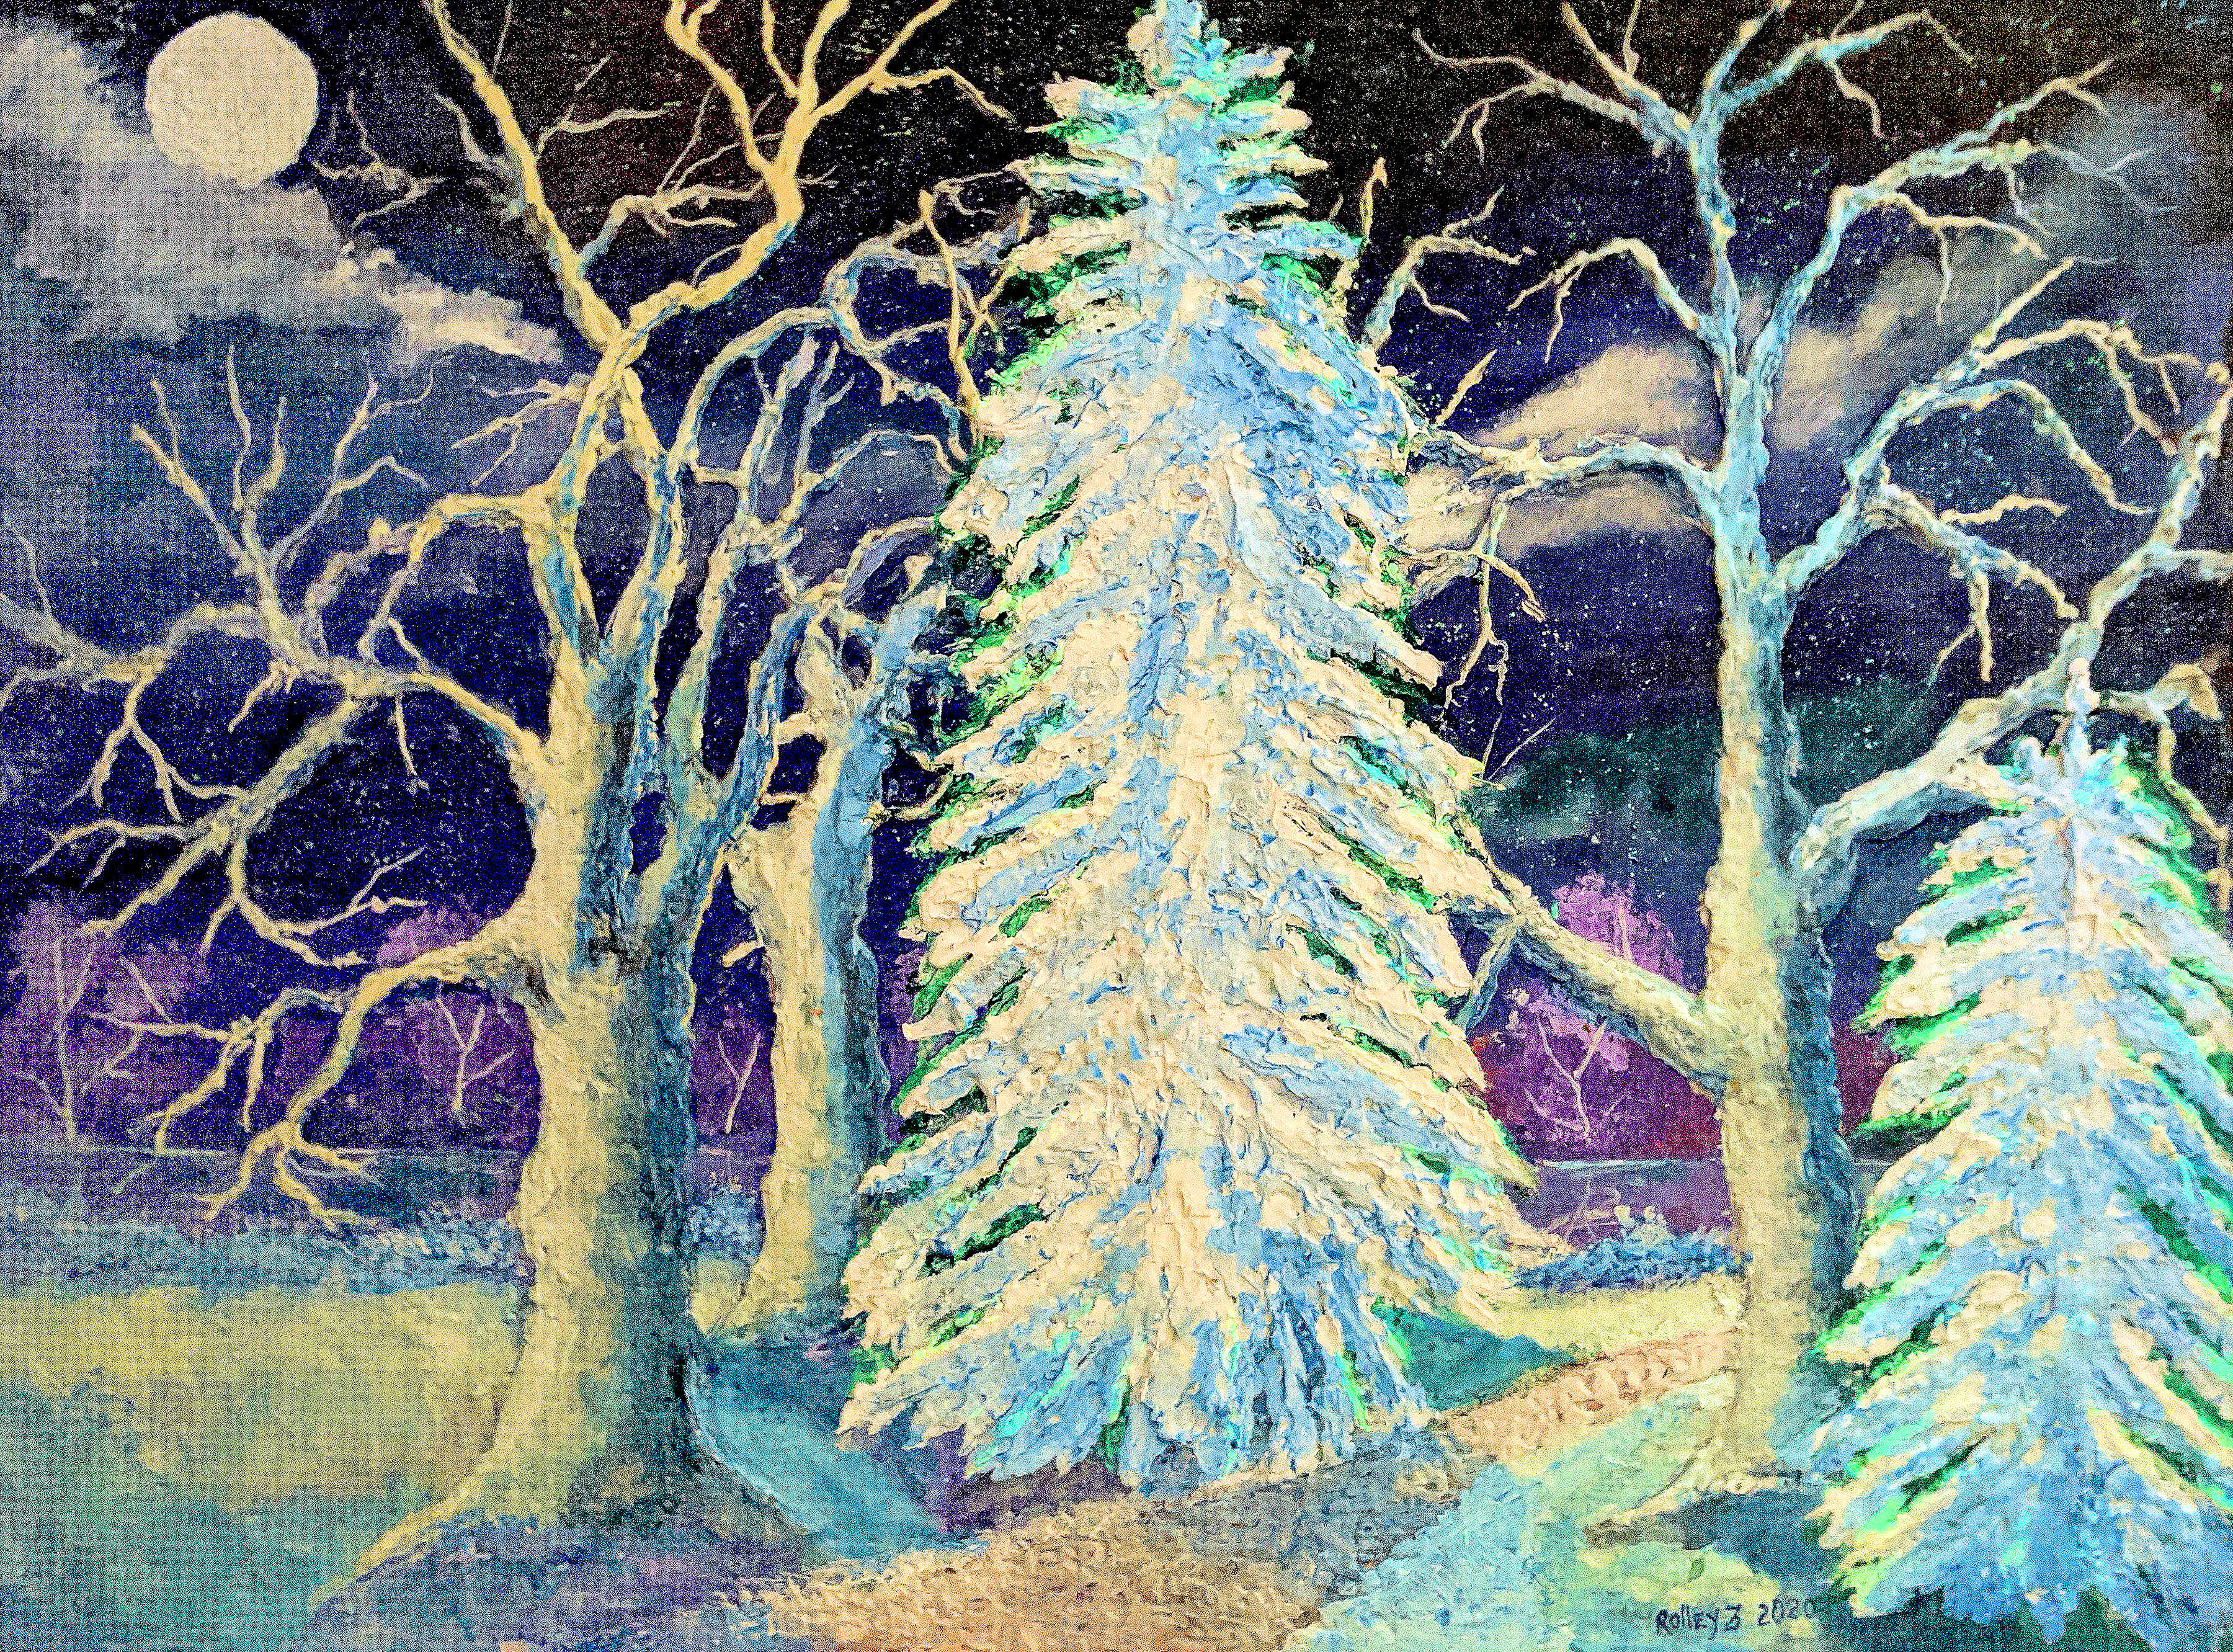 THE WINTER PATH  30x40 $800  HIGHLIGHTED WITH GLOW IN DARK LUMINESCENT PAINT